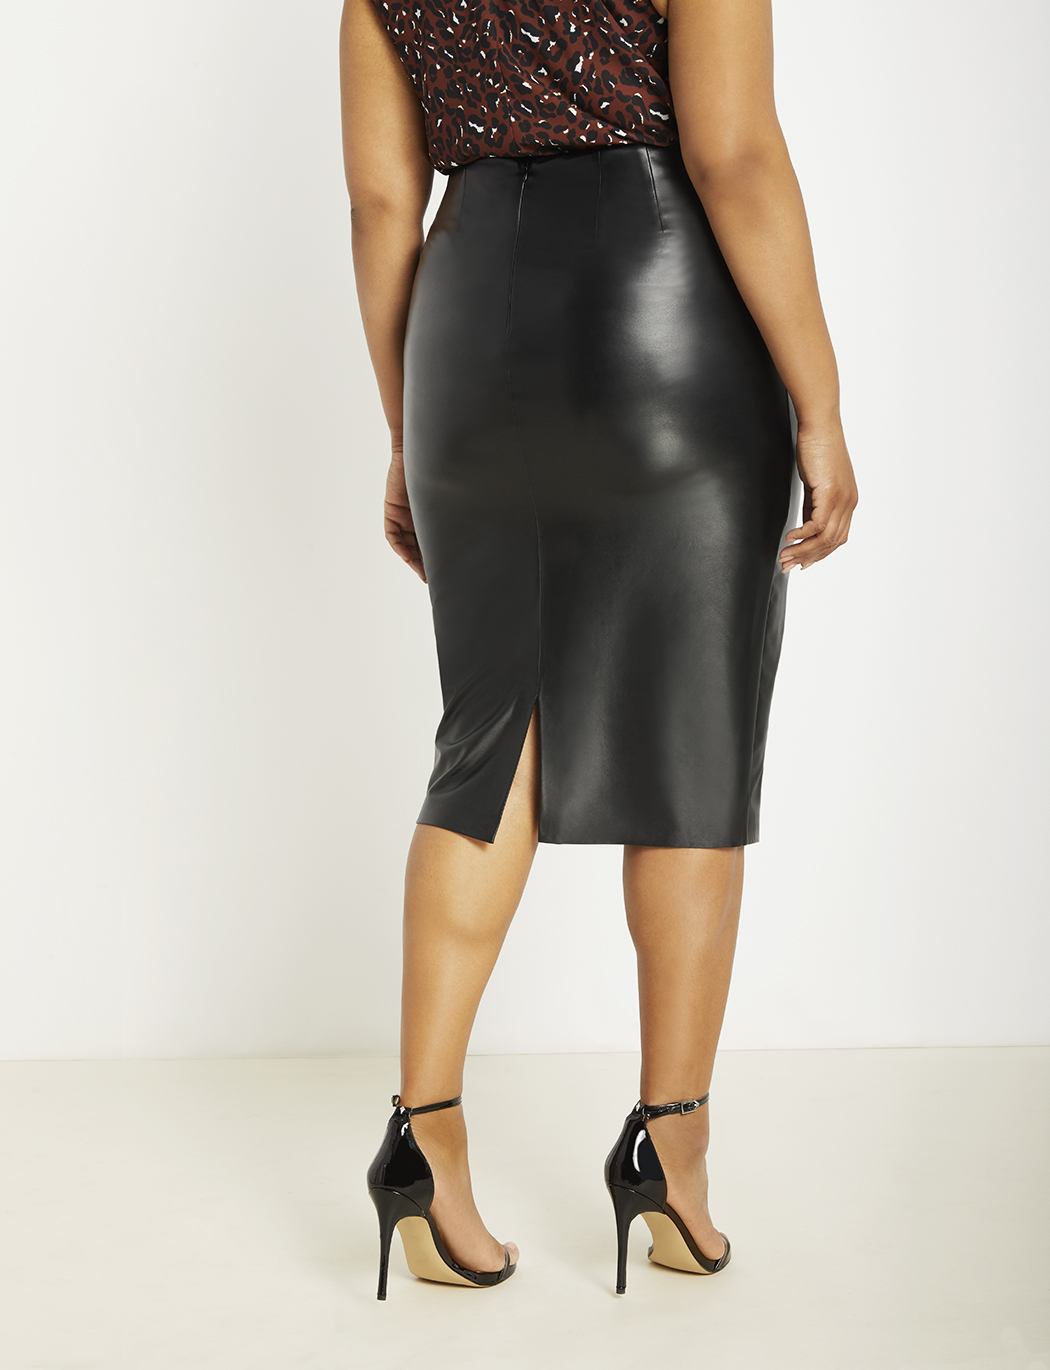 Vegan Leather Column Skirt